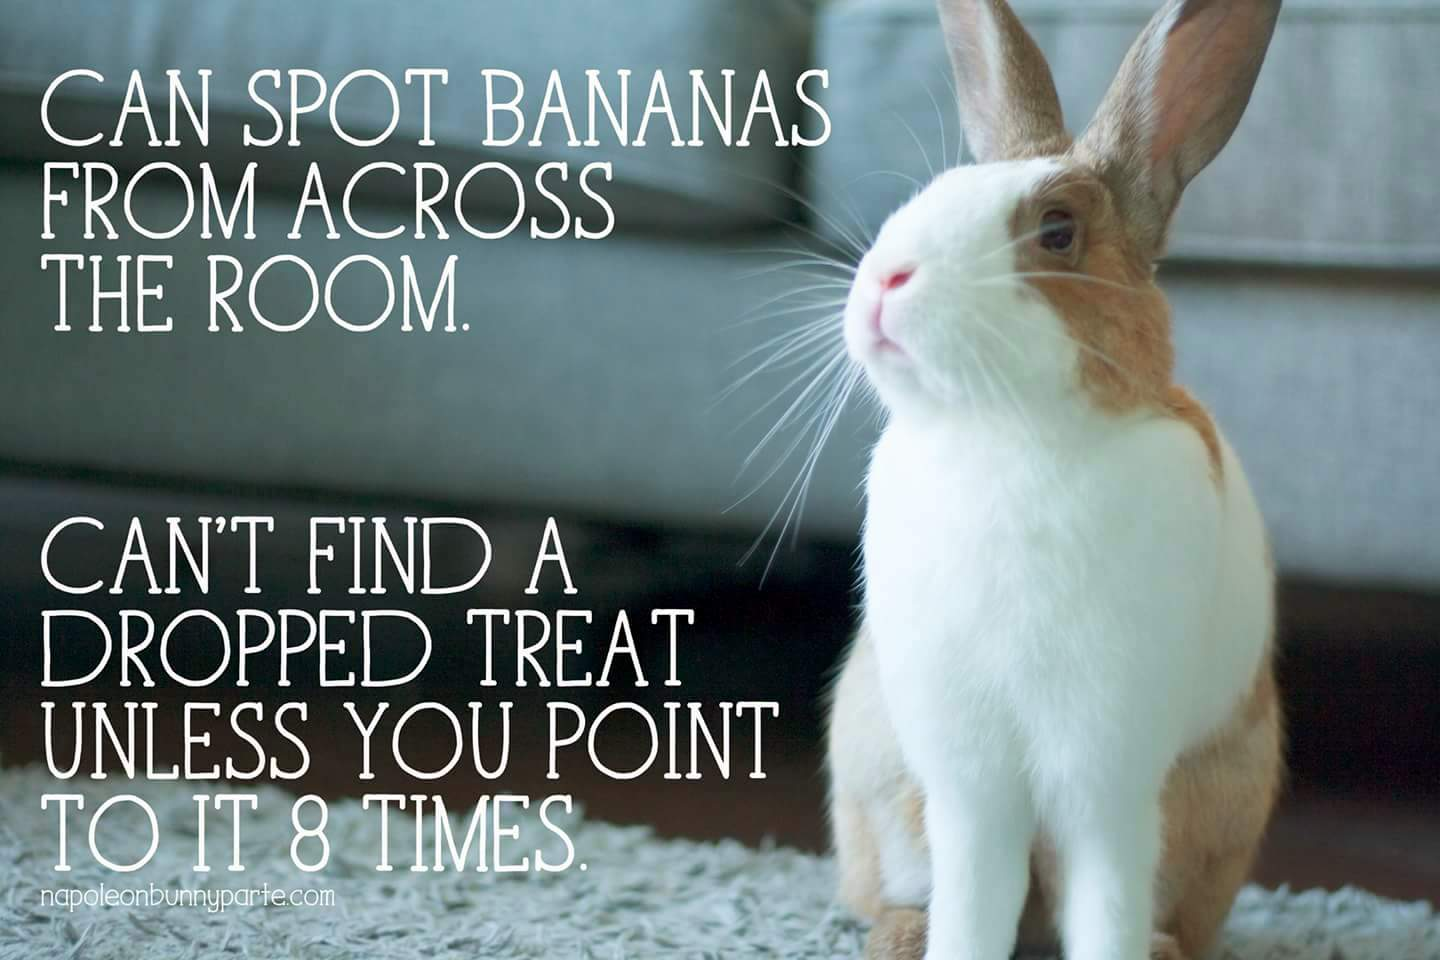 Funny rabbit funny rabbit pictures pictures of rabbits funny - Funny Bunny Monday Meme Day